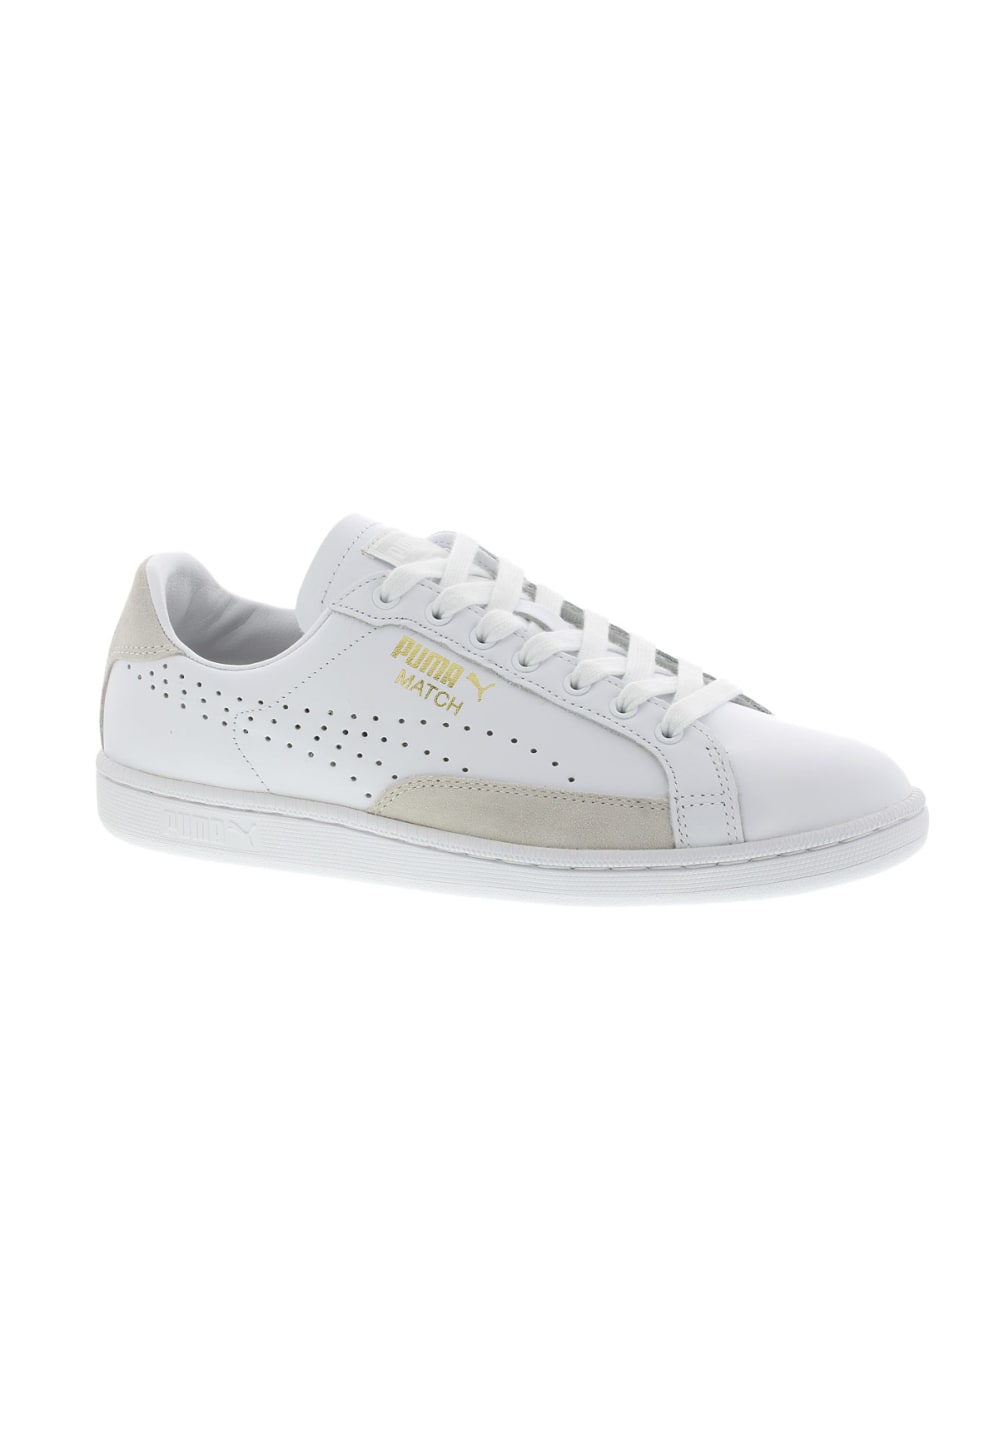 best sneakers 88e71 29994 Puma Match 74 UPC - Tennis Shoes for Men - White